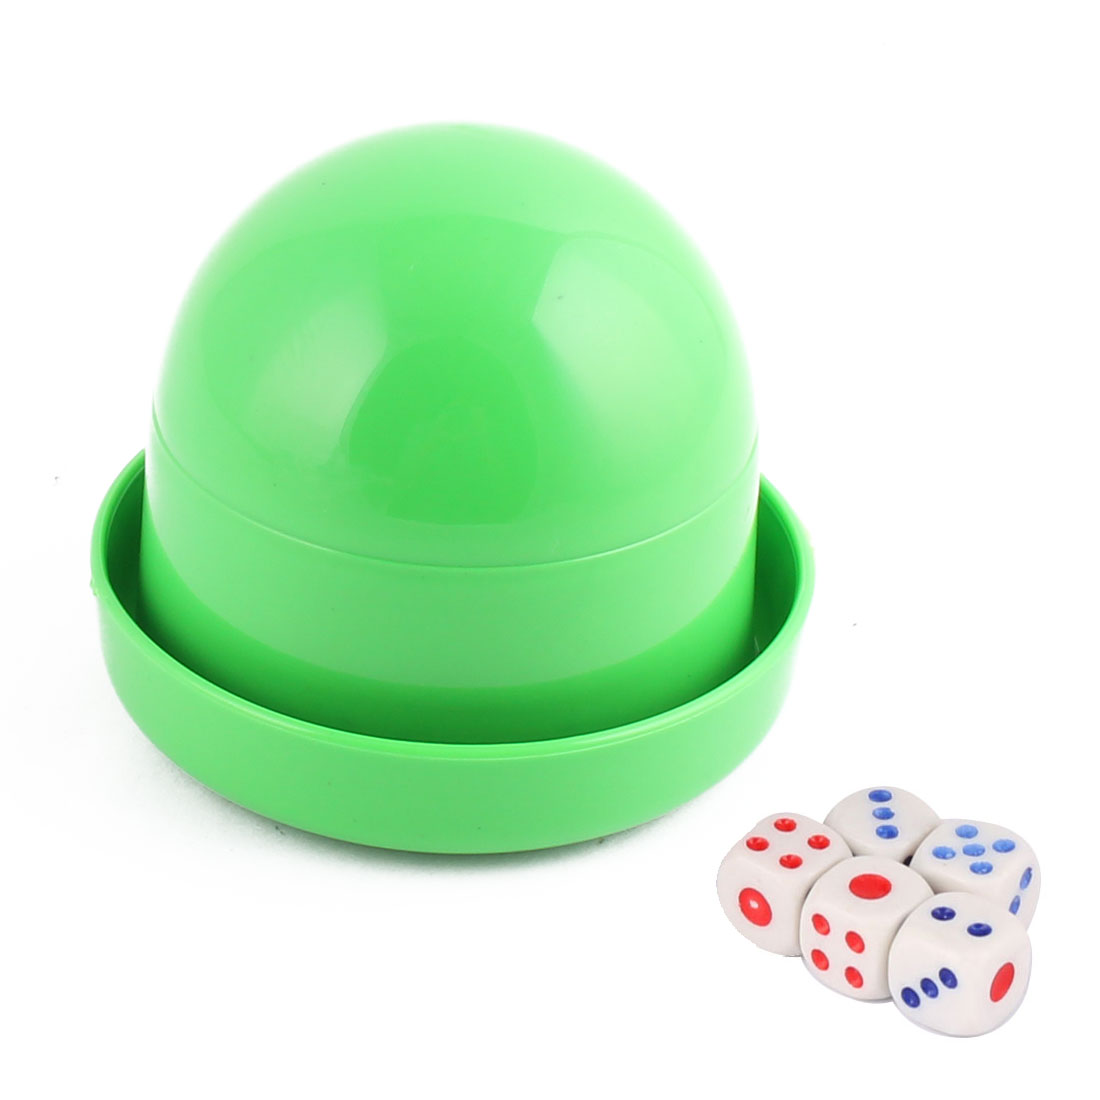 Party Casino Games Plastic Cylindrical Hand Shaker Cup Entertainment Dice Green